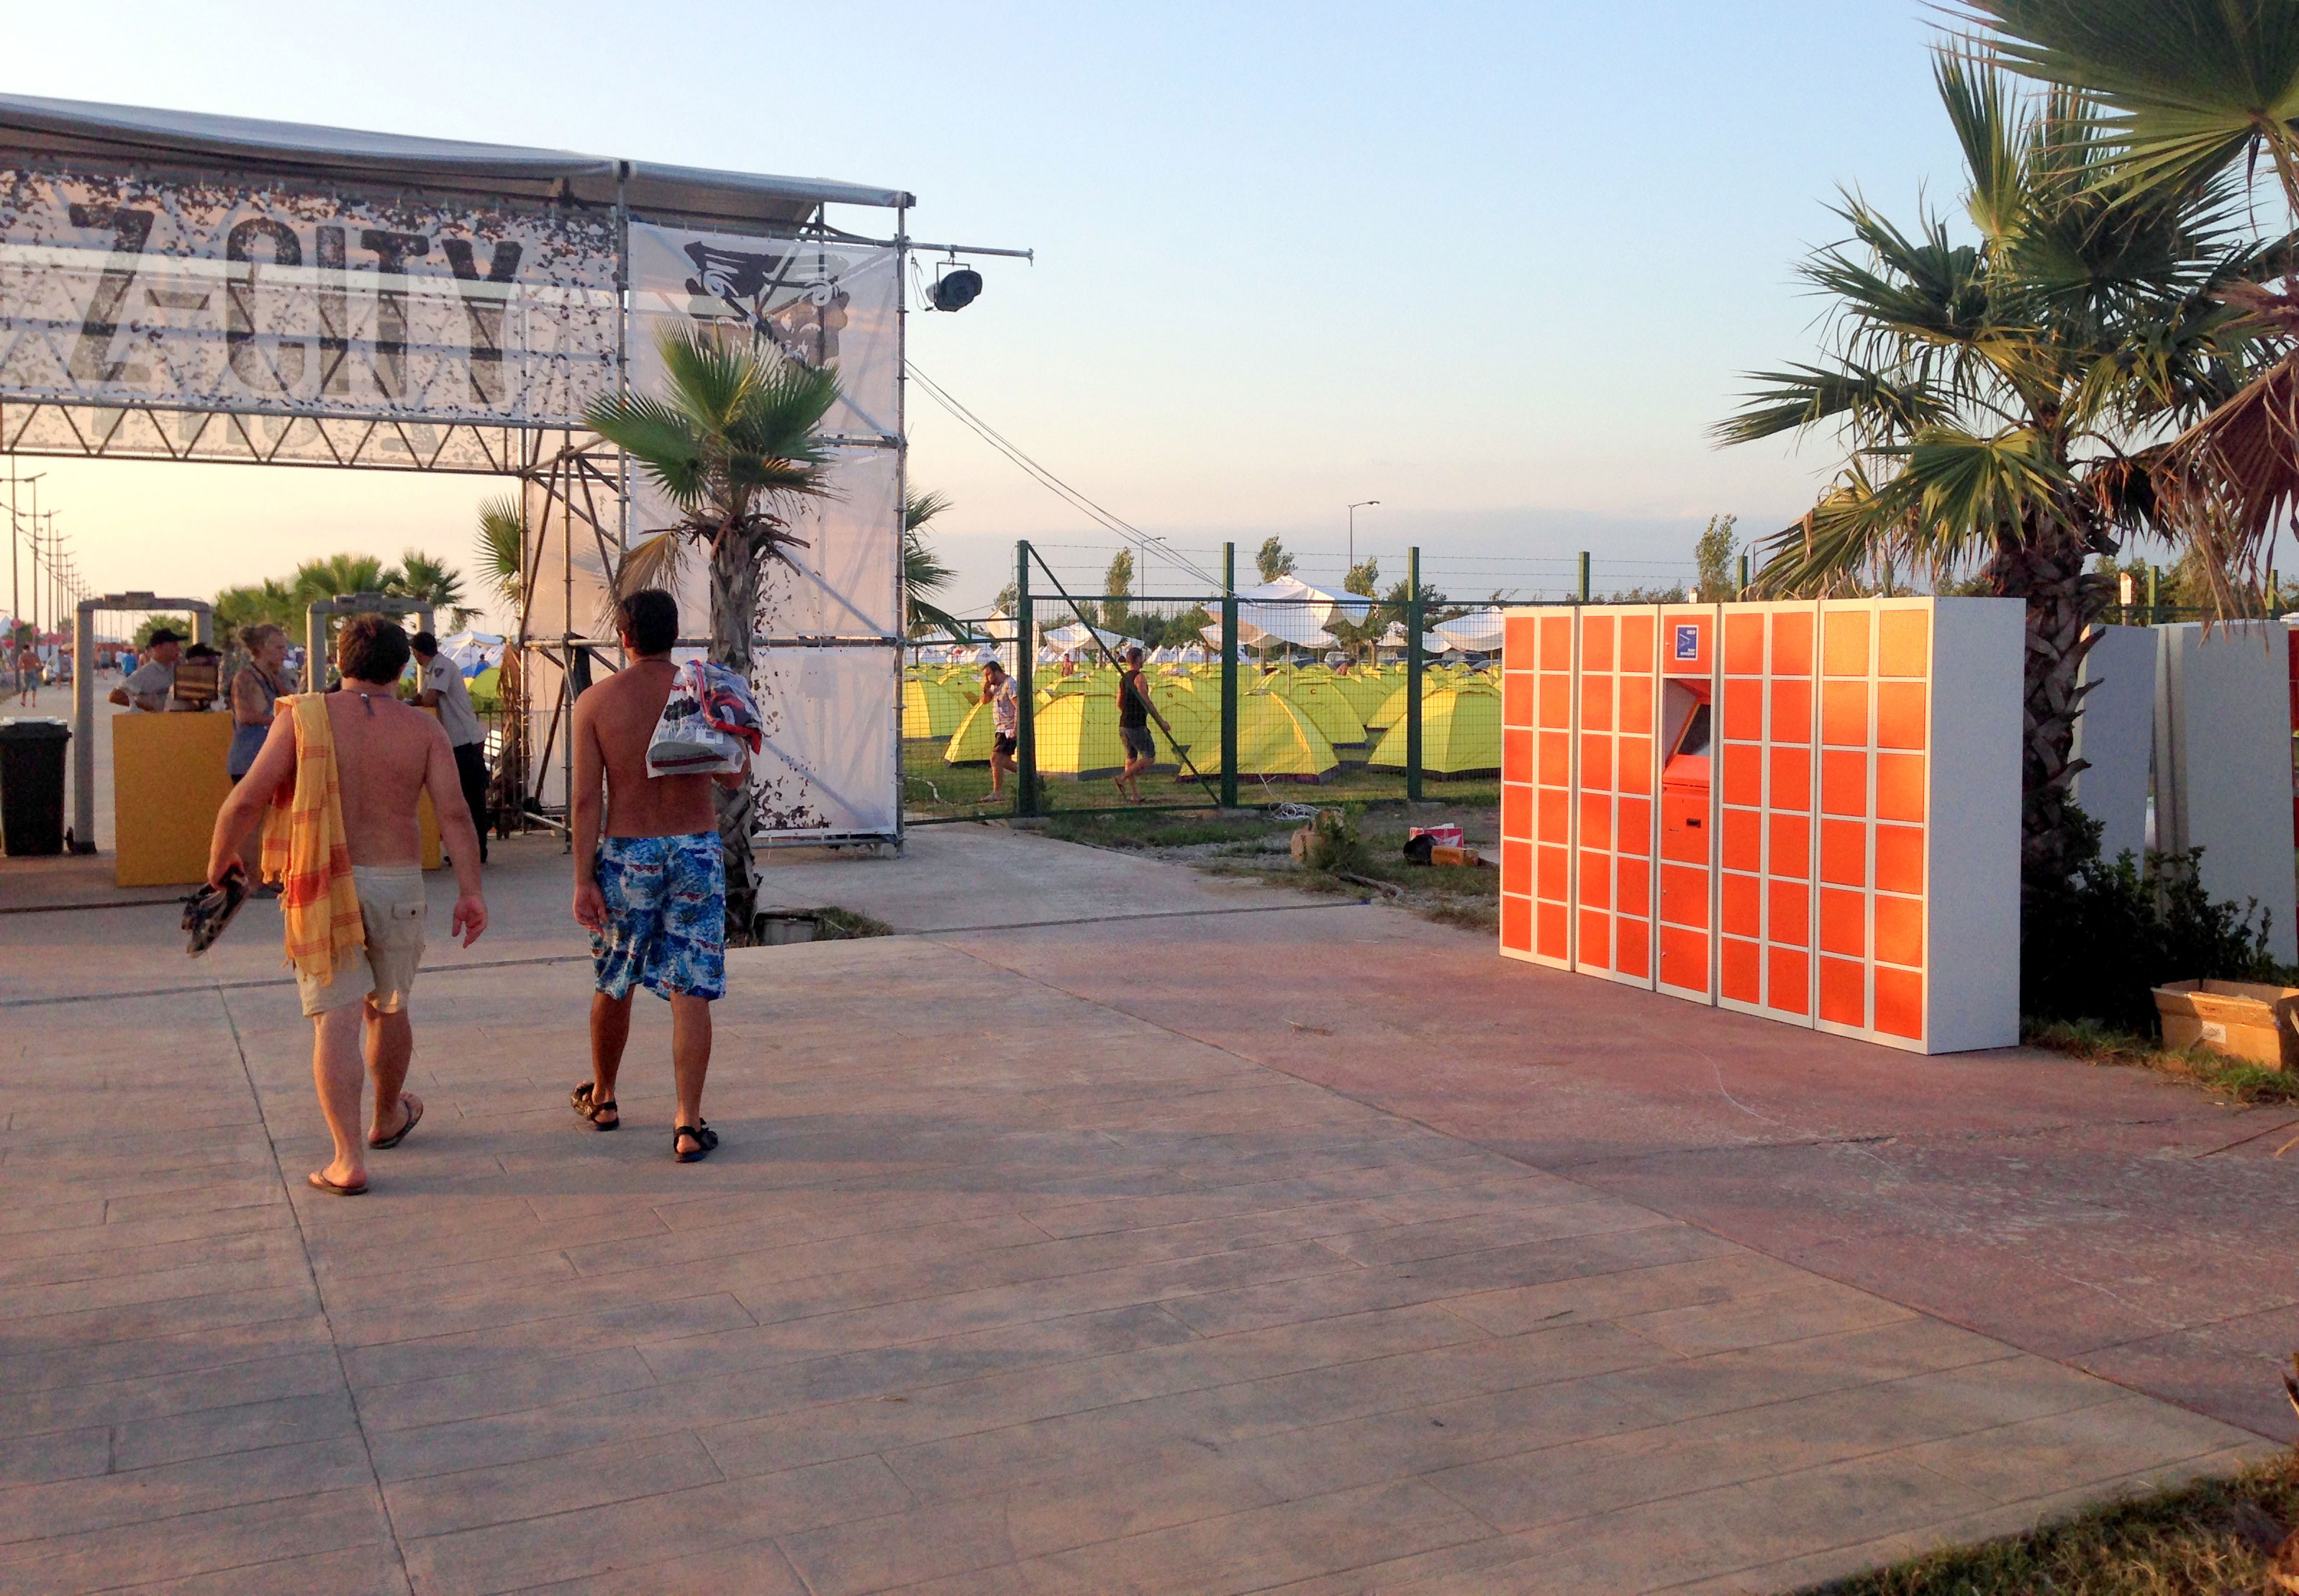 Beach lockers for festival